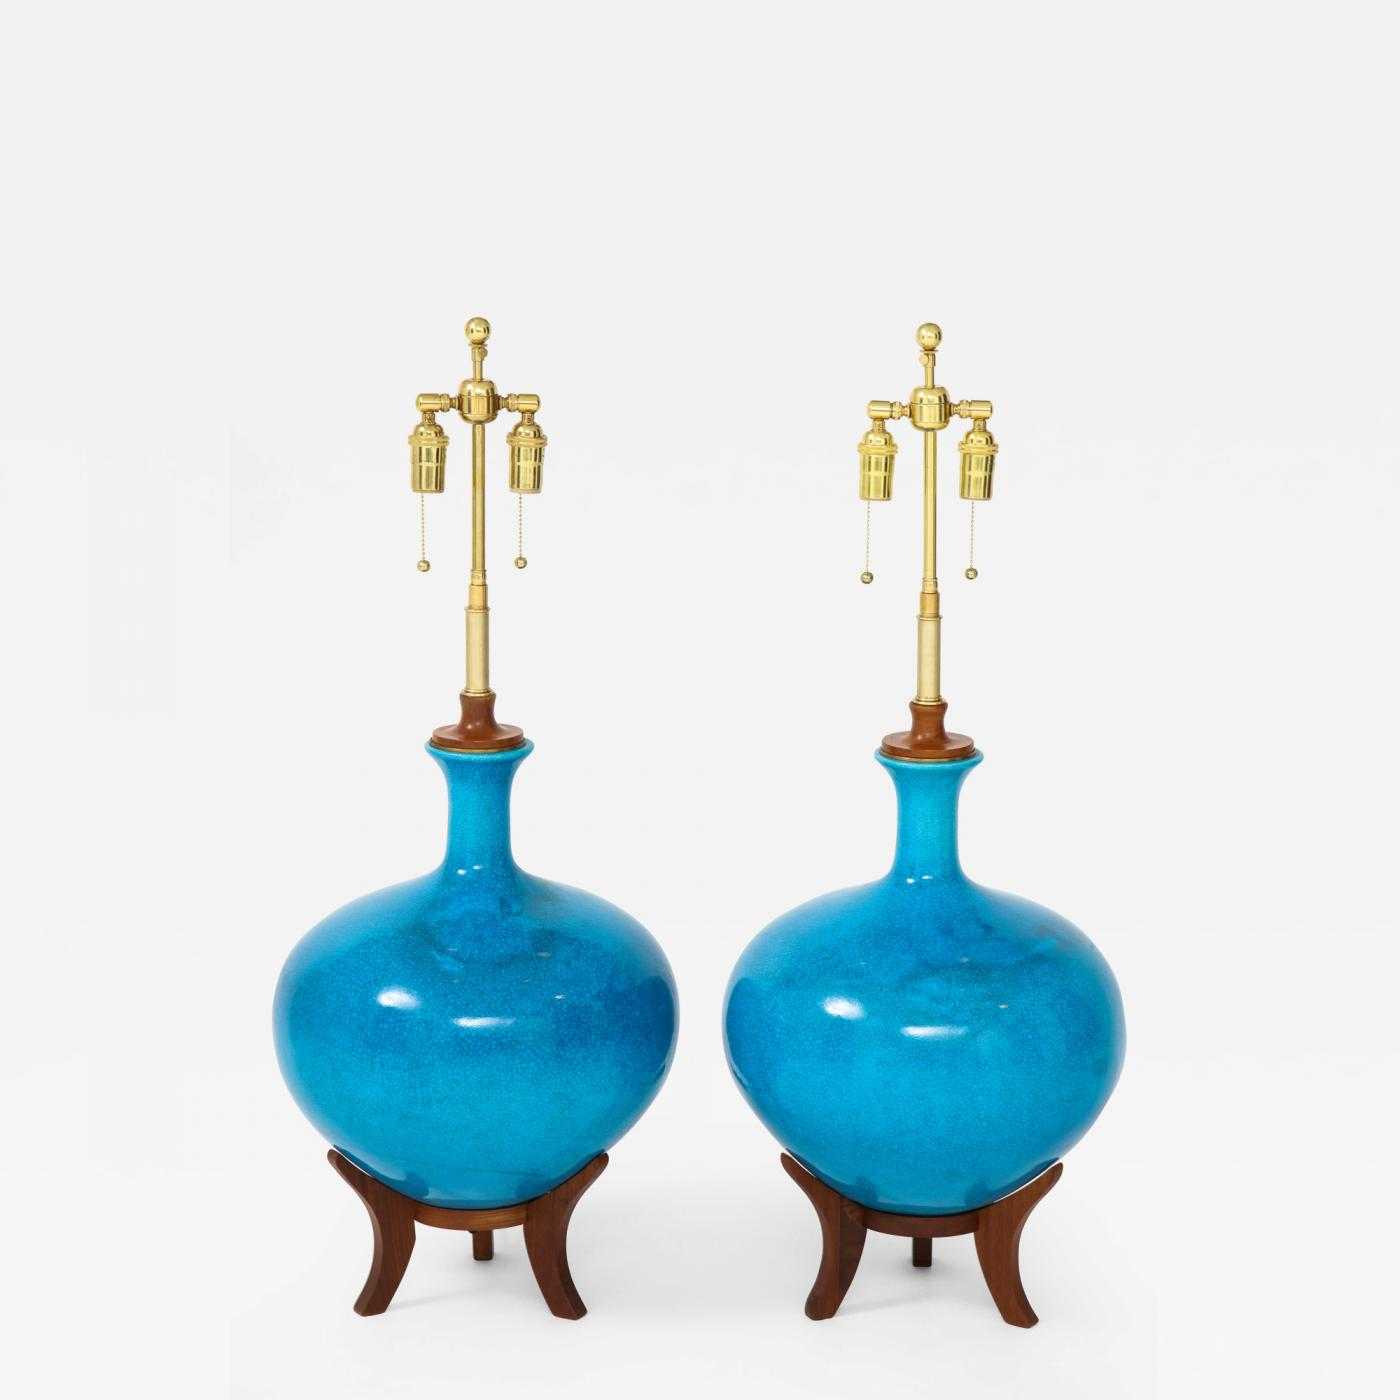 Tremendous Frederick G Cooper Fabulous Pair Of Mid Century Lamps With A Cerulean Blue Crackle Glaze Gmtry Best Dining Table And Chair Ideas Images Gmtryco